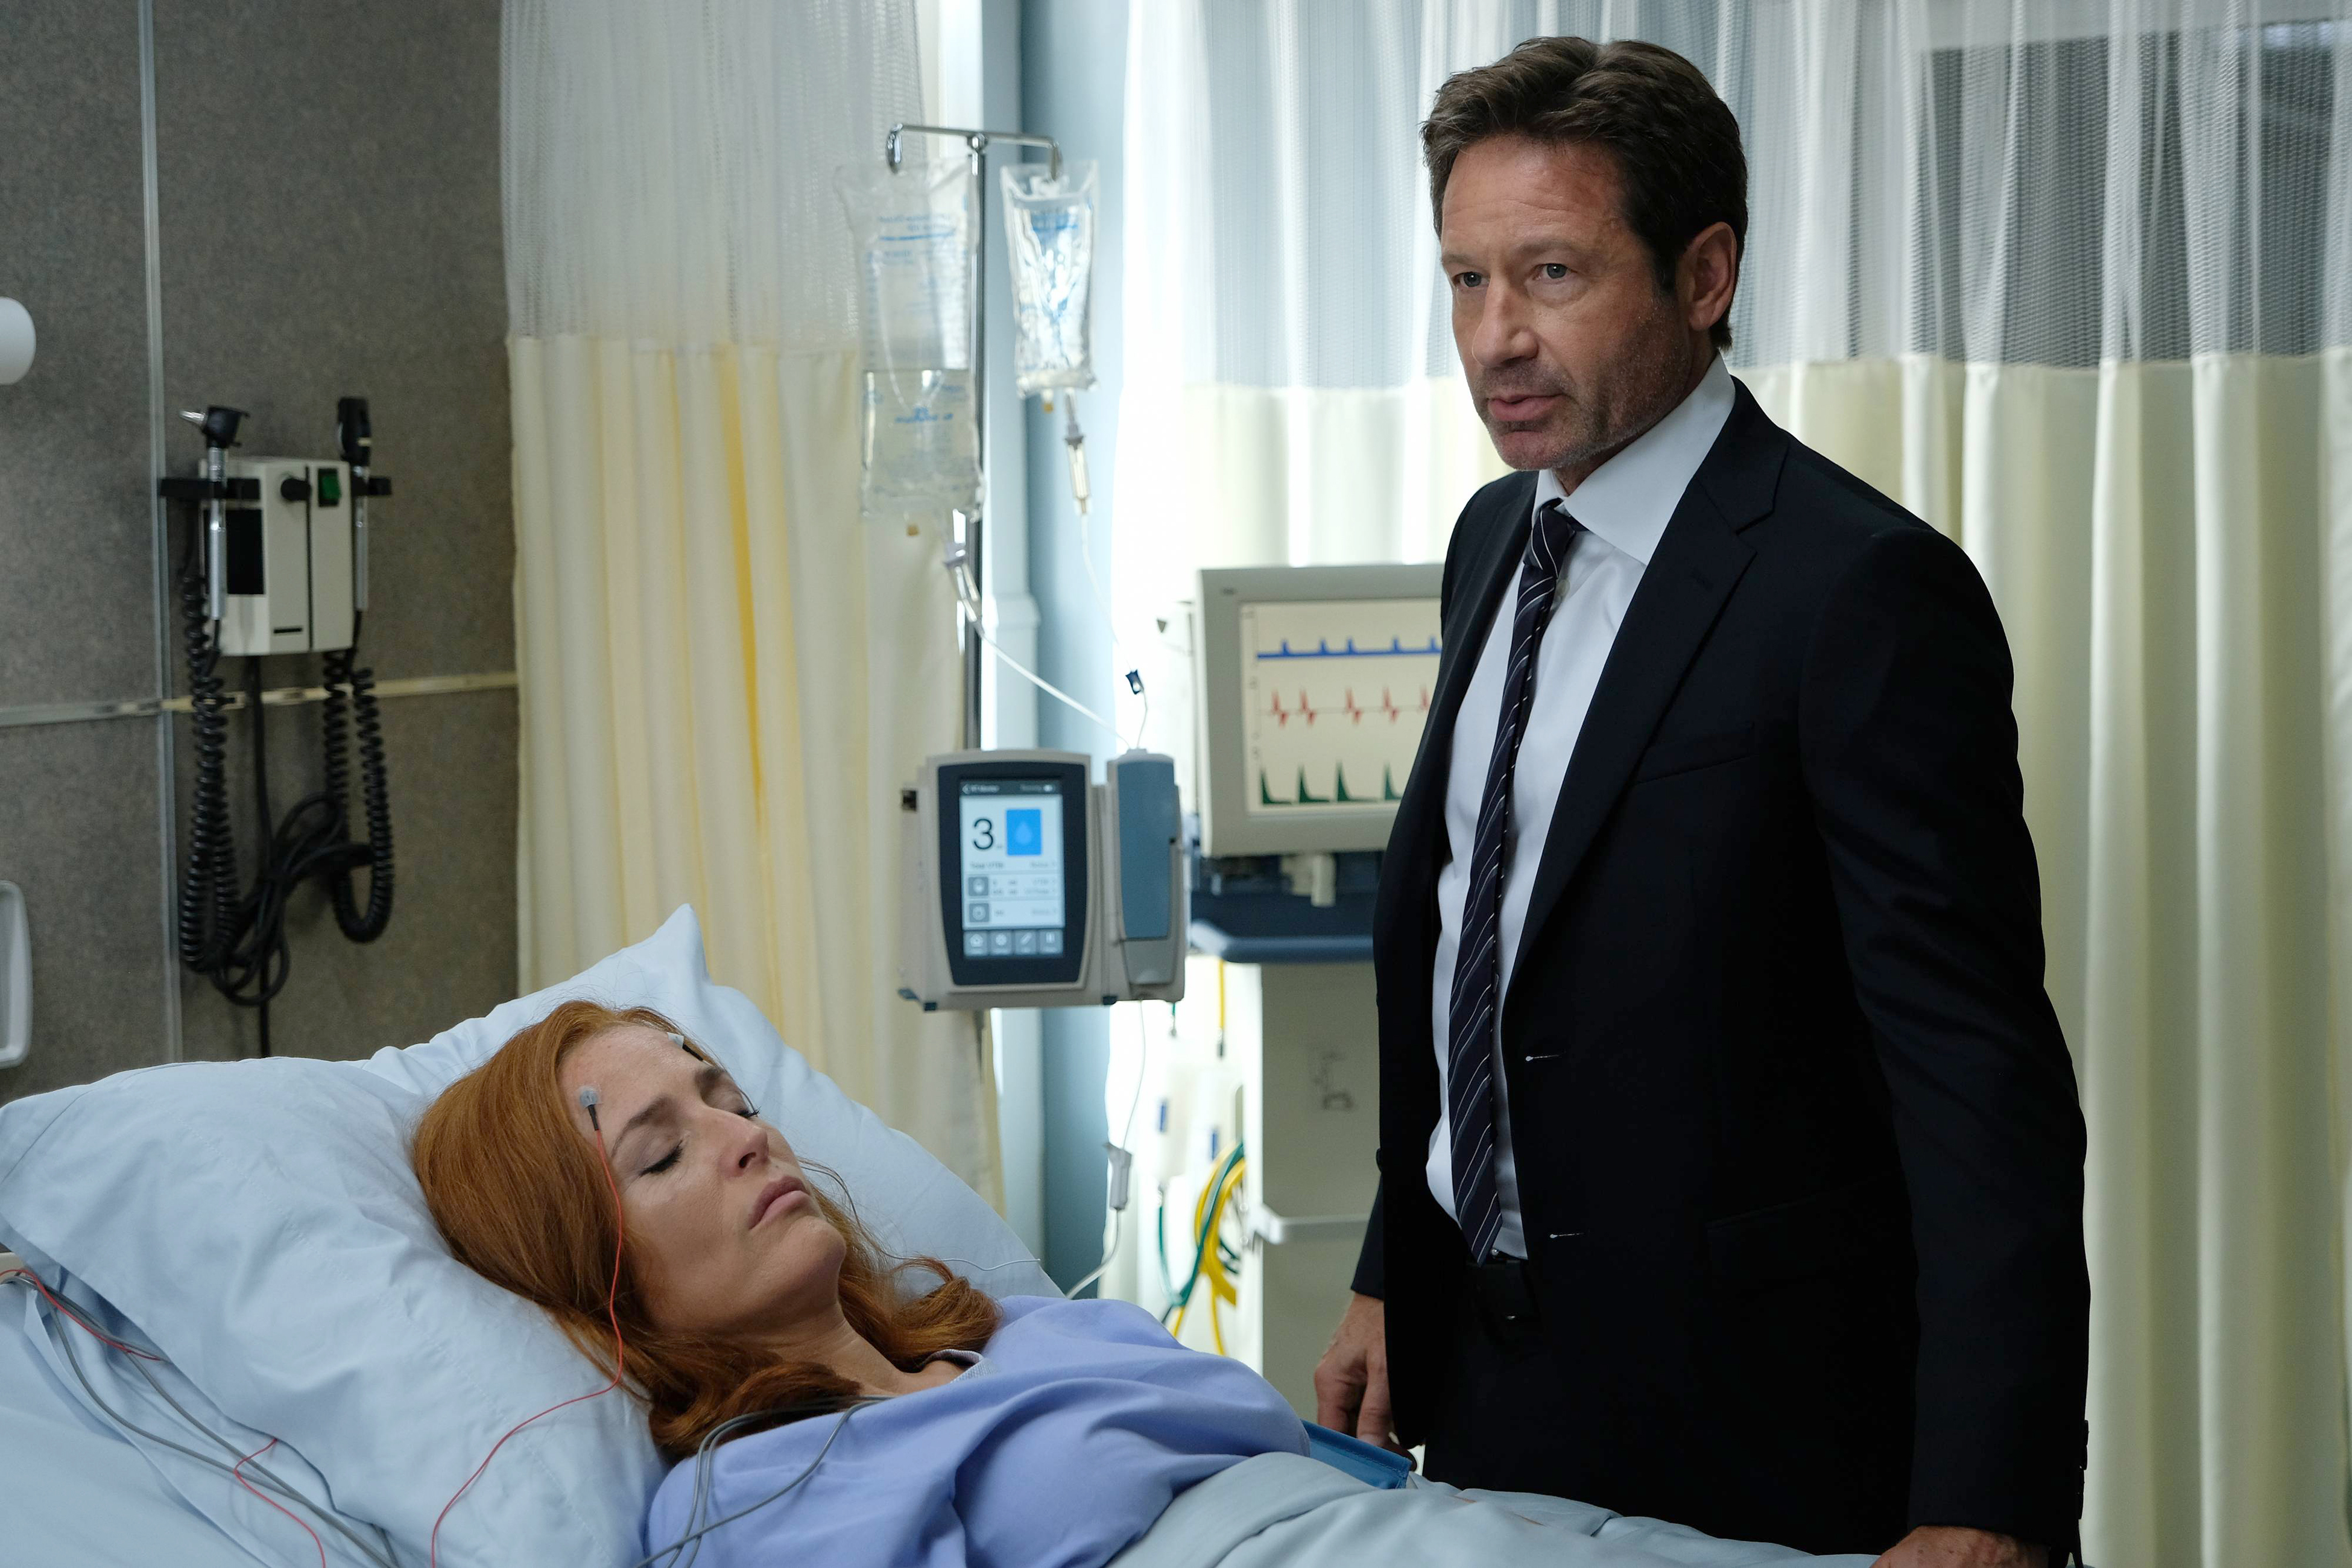 xf s2 201 sc7 rf 0048 hires2 10 Years with David Duchovny: On Loving Garry Shandling, Missing Bonnie Hunt, and Fighting for the Future